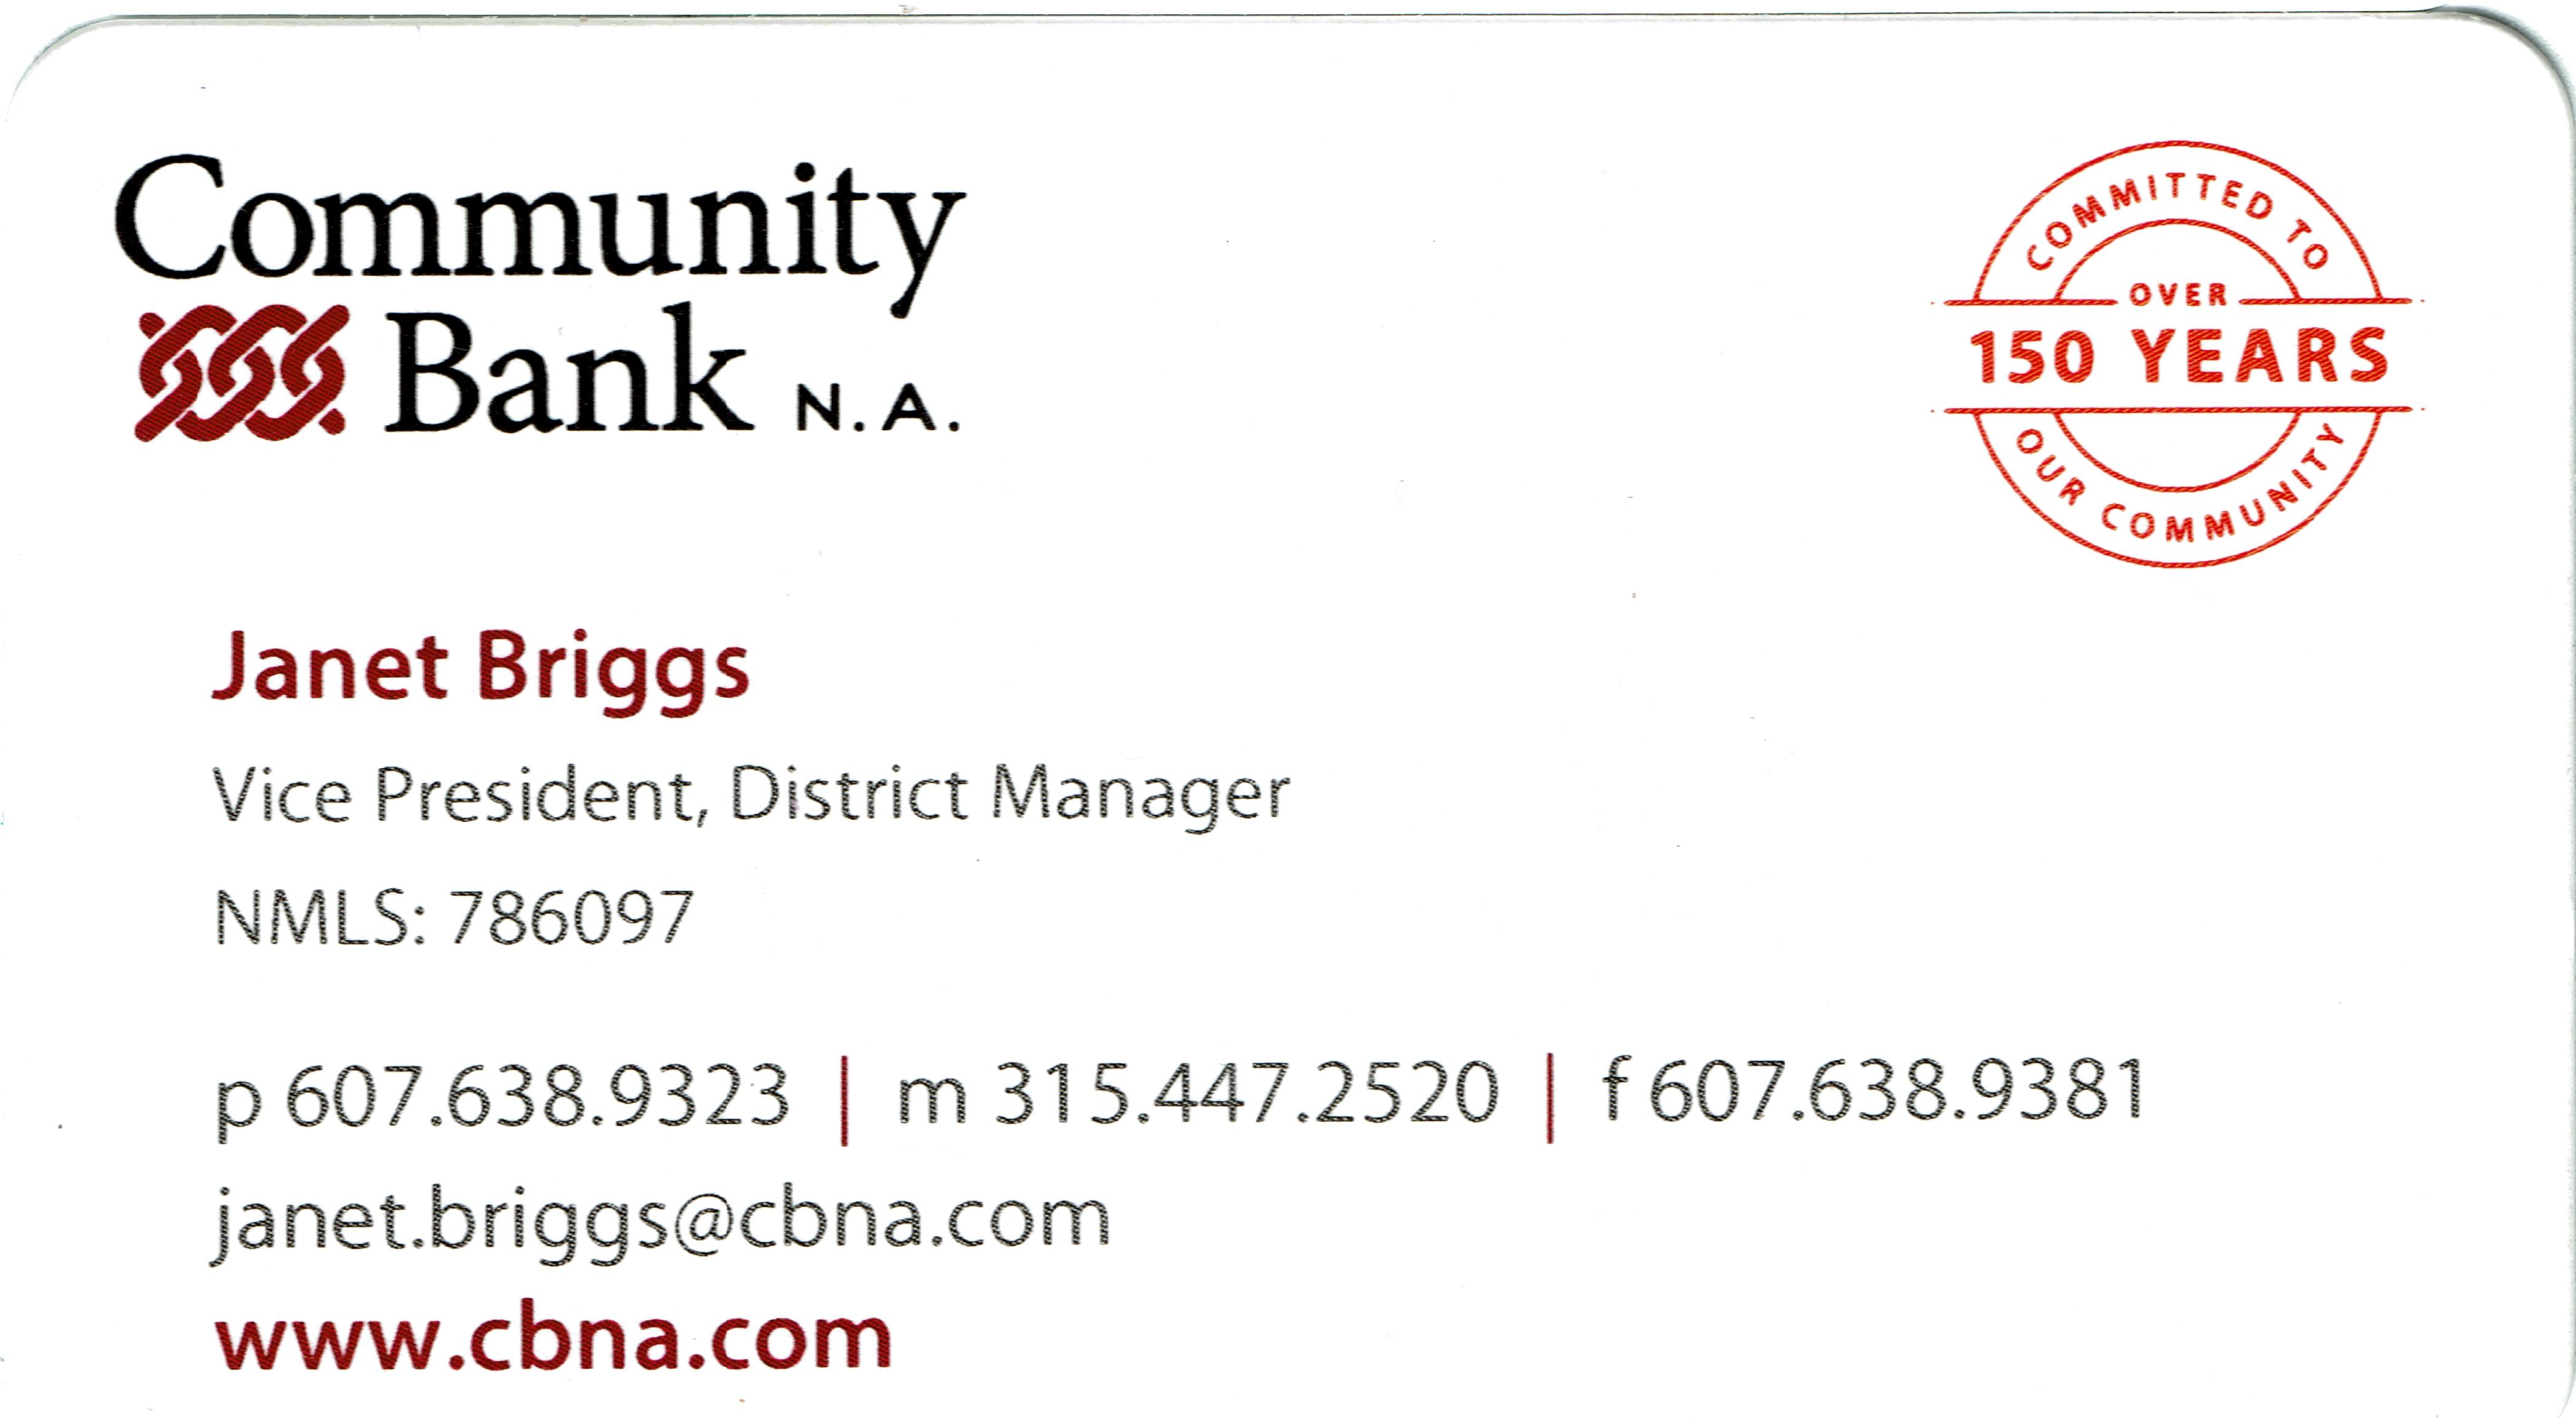 Community Bank Janet Briggs